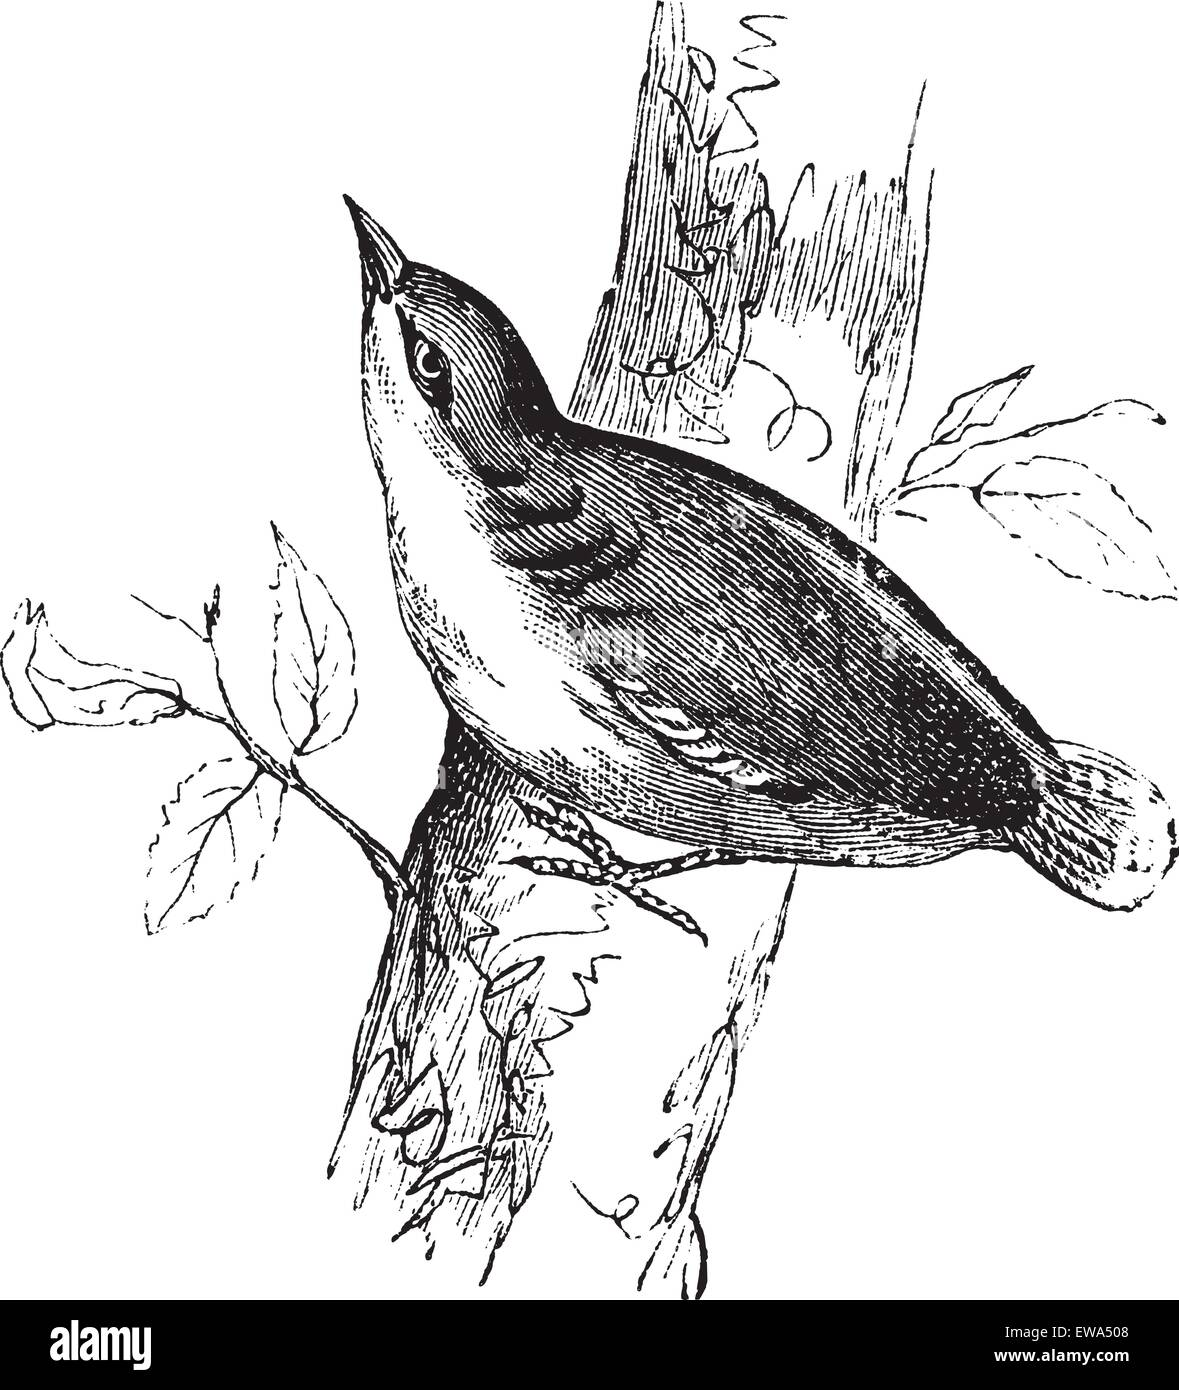 Eurasian Nuthatch or Sitta europaea or Nuthatch, vintage engraving.  Old engraved illustration of Eurasian Nuthatch - Stock Vector